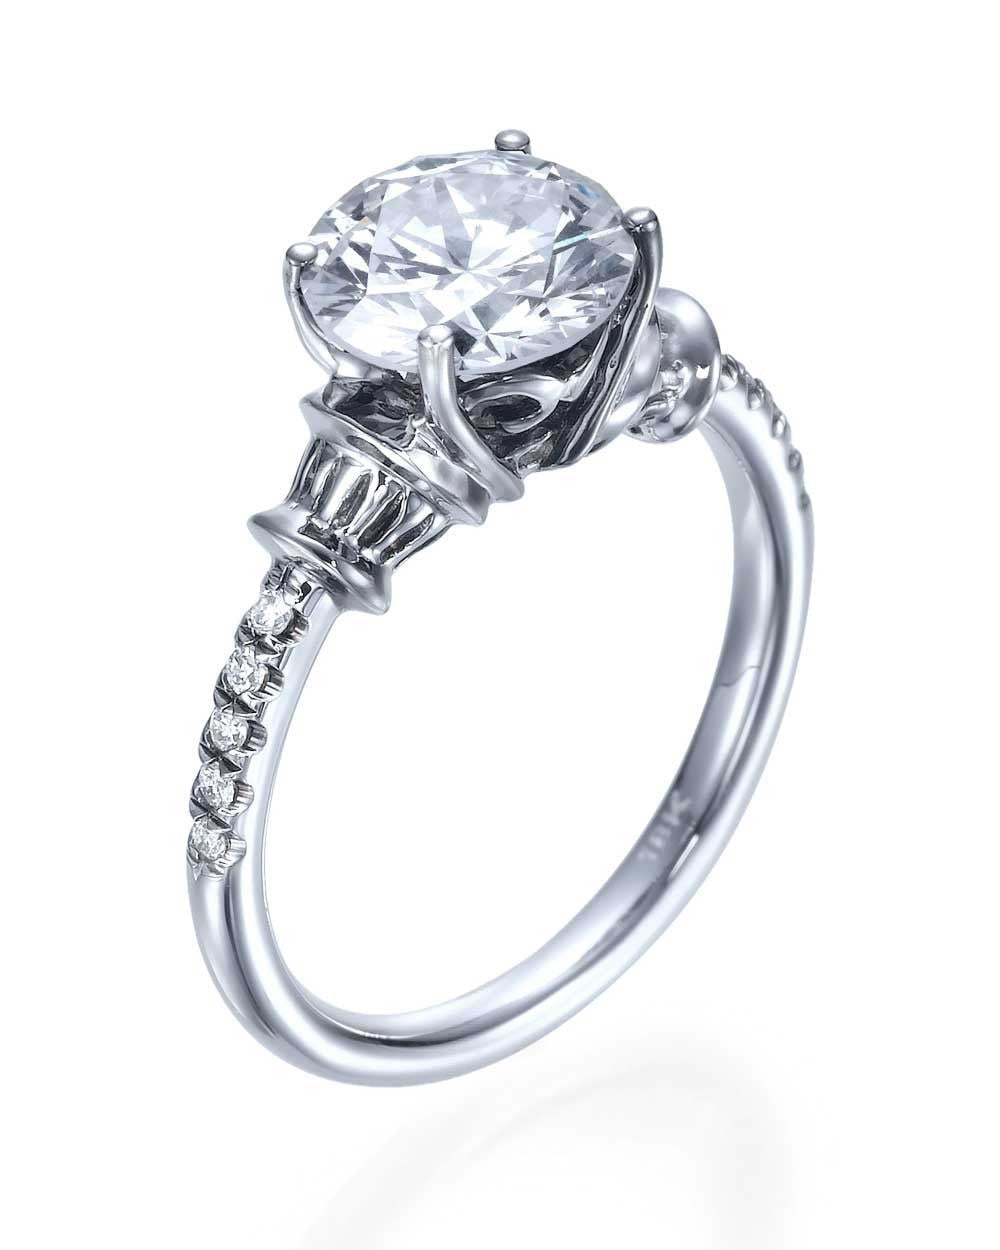 Engagement Rings 4prong Antique Round Engagement Ring  2ct Diamond